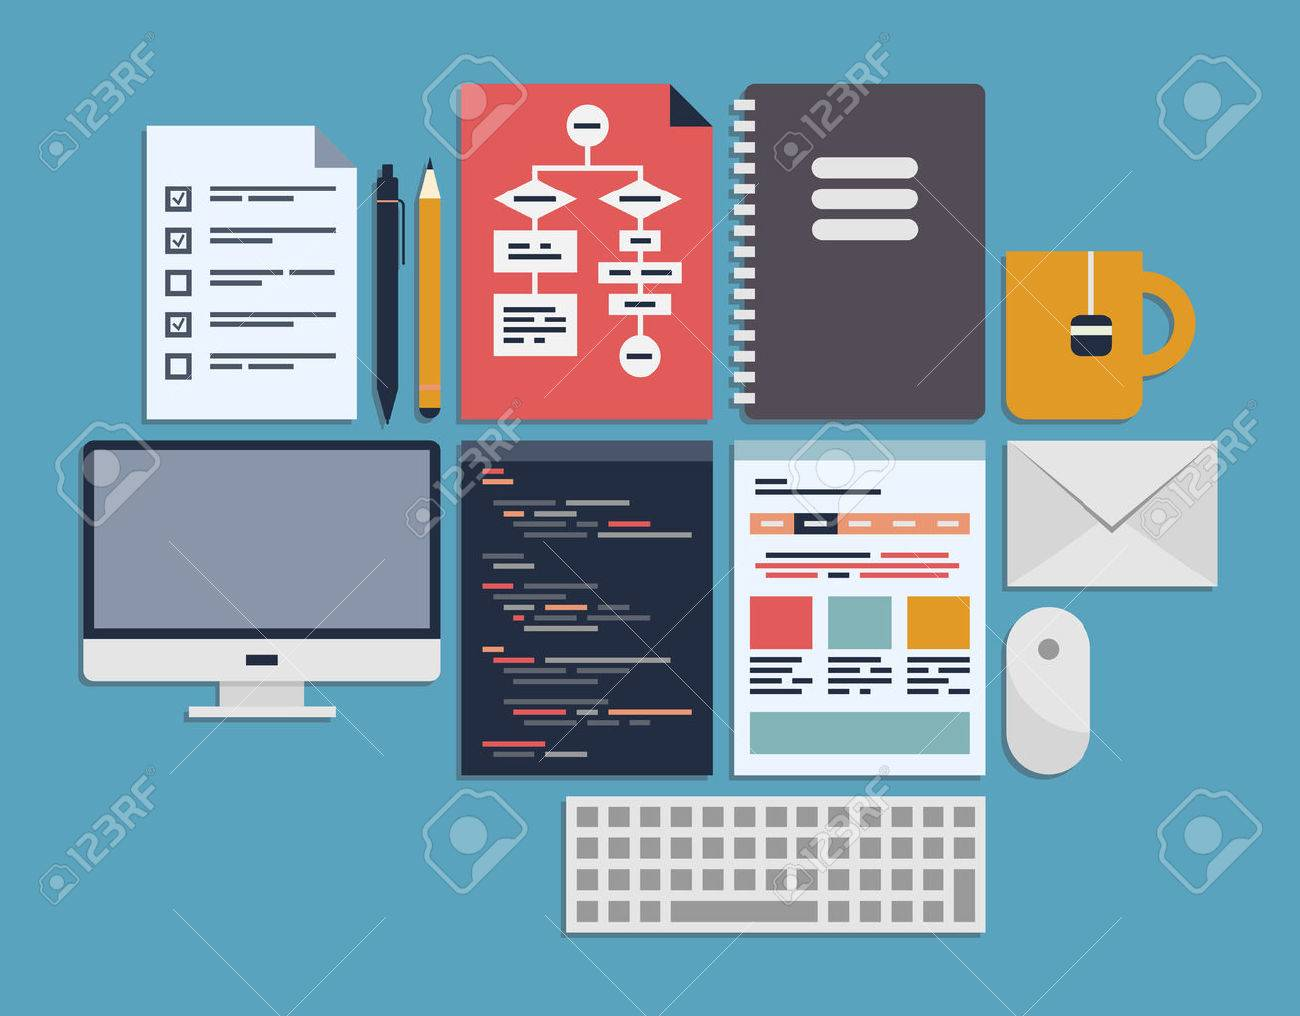 Flat design vector illustration icons set of web page programming, user interface elements and workflow objects Isolated on blue - 22900979